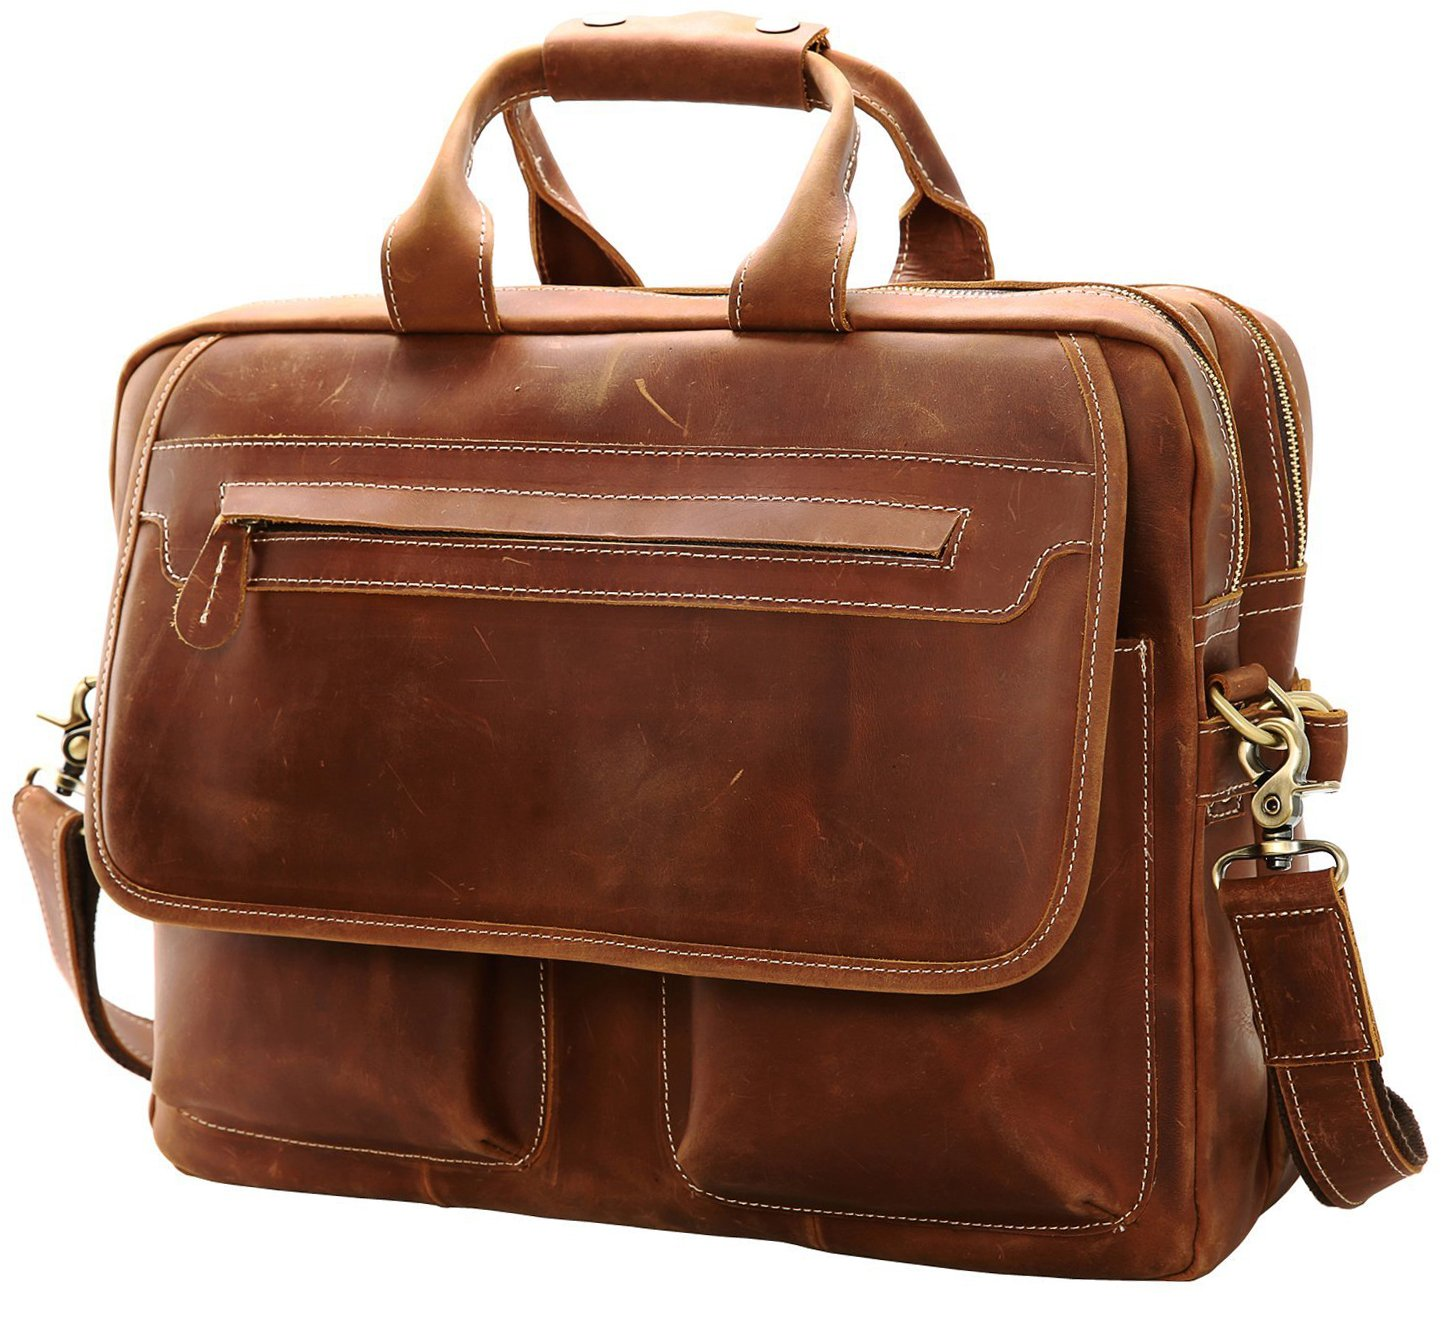 Iswee Leather Vintage Briefcase Messenger Bag for Men 14'' or 16'' or 17'' Laptop Case Satchel Bag for Everyday Use (Large Light Brown)